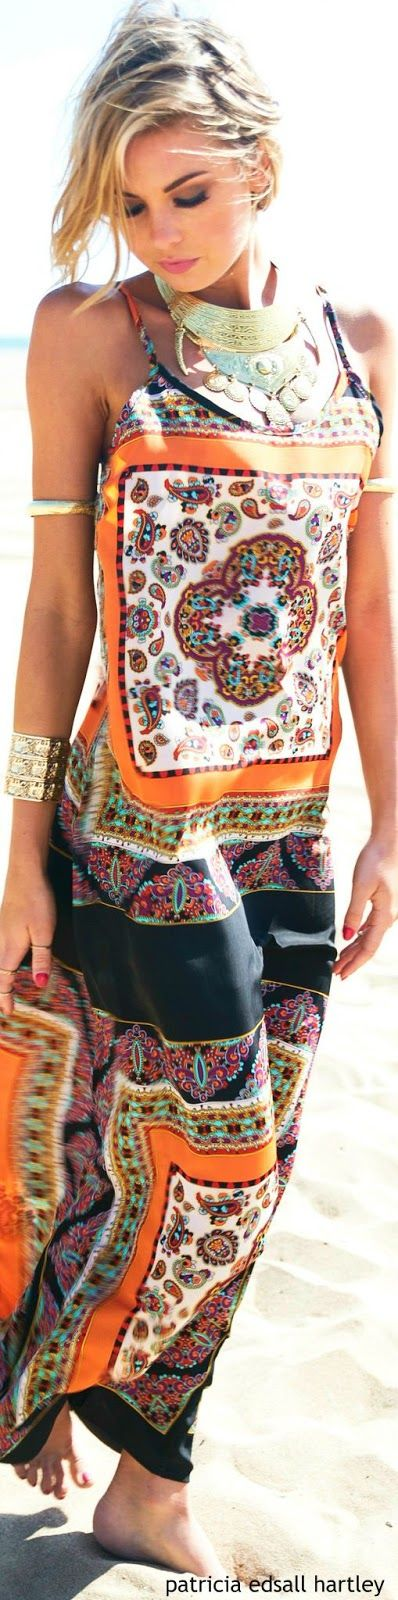 Latest fashion trends: Women's fashion | Boho printed maxi dress with statement necklace and golden bracelets